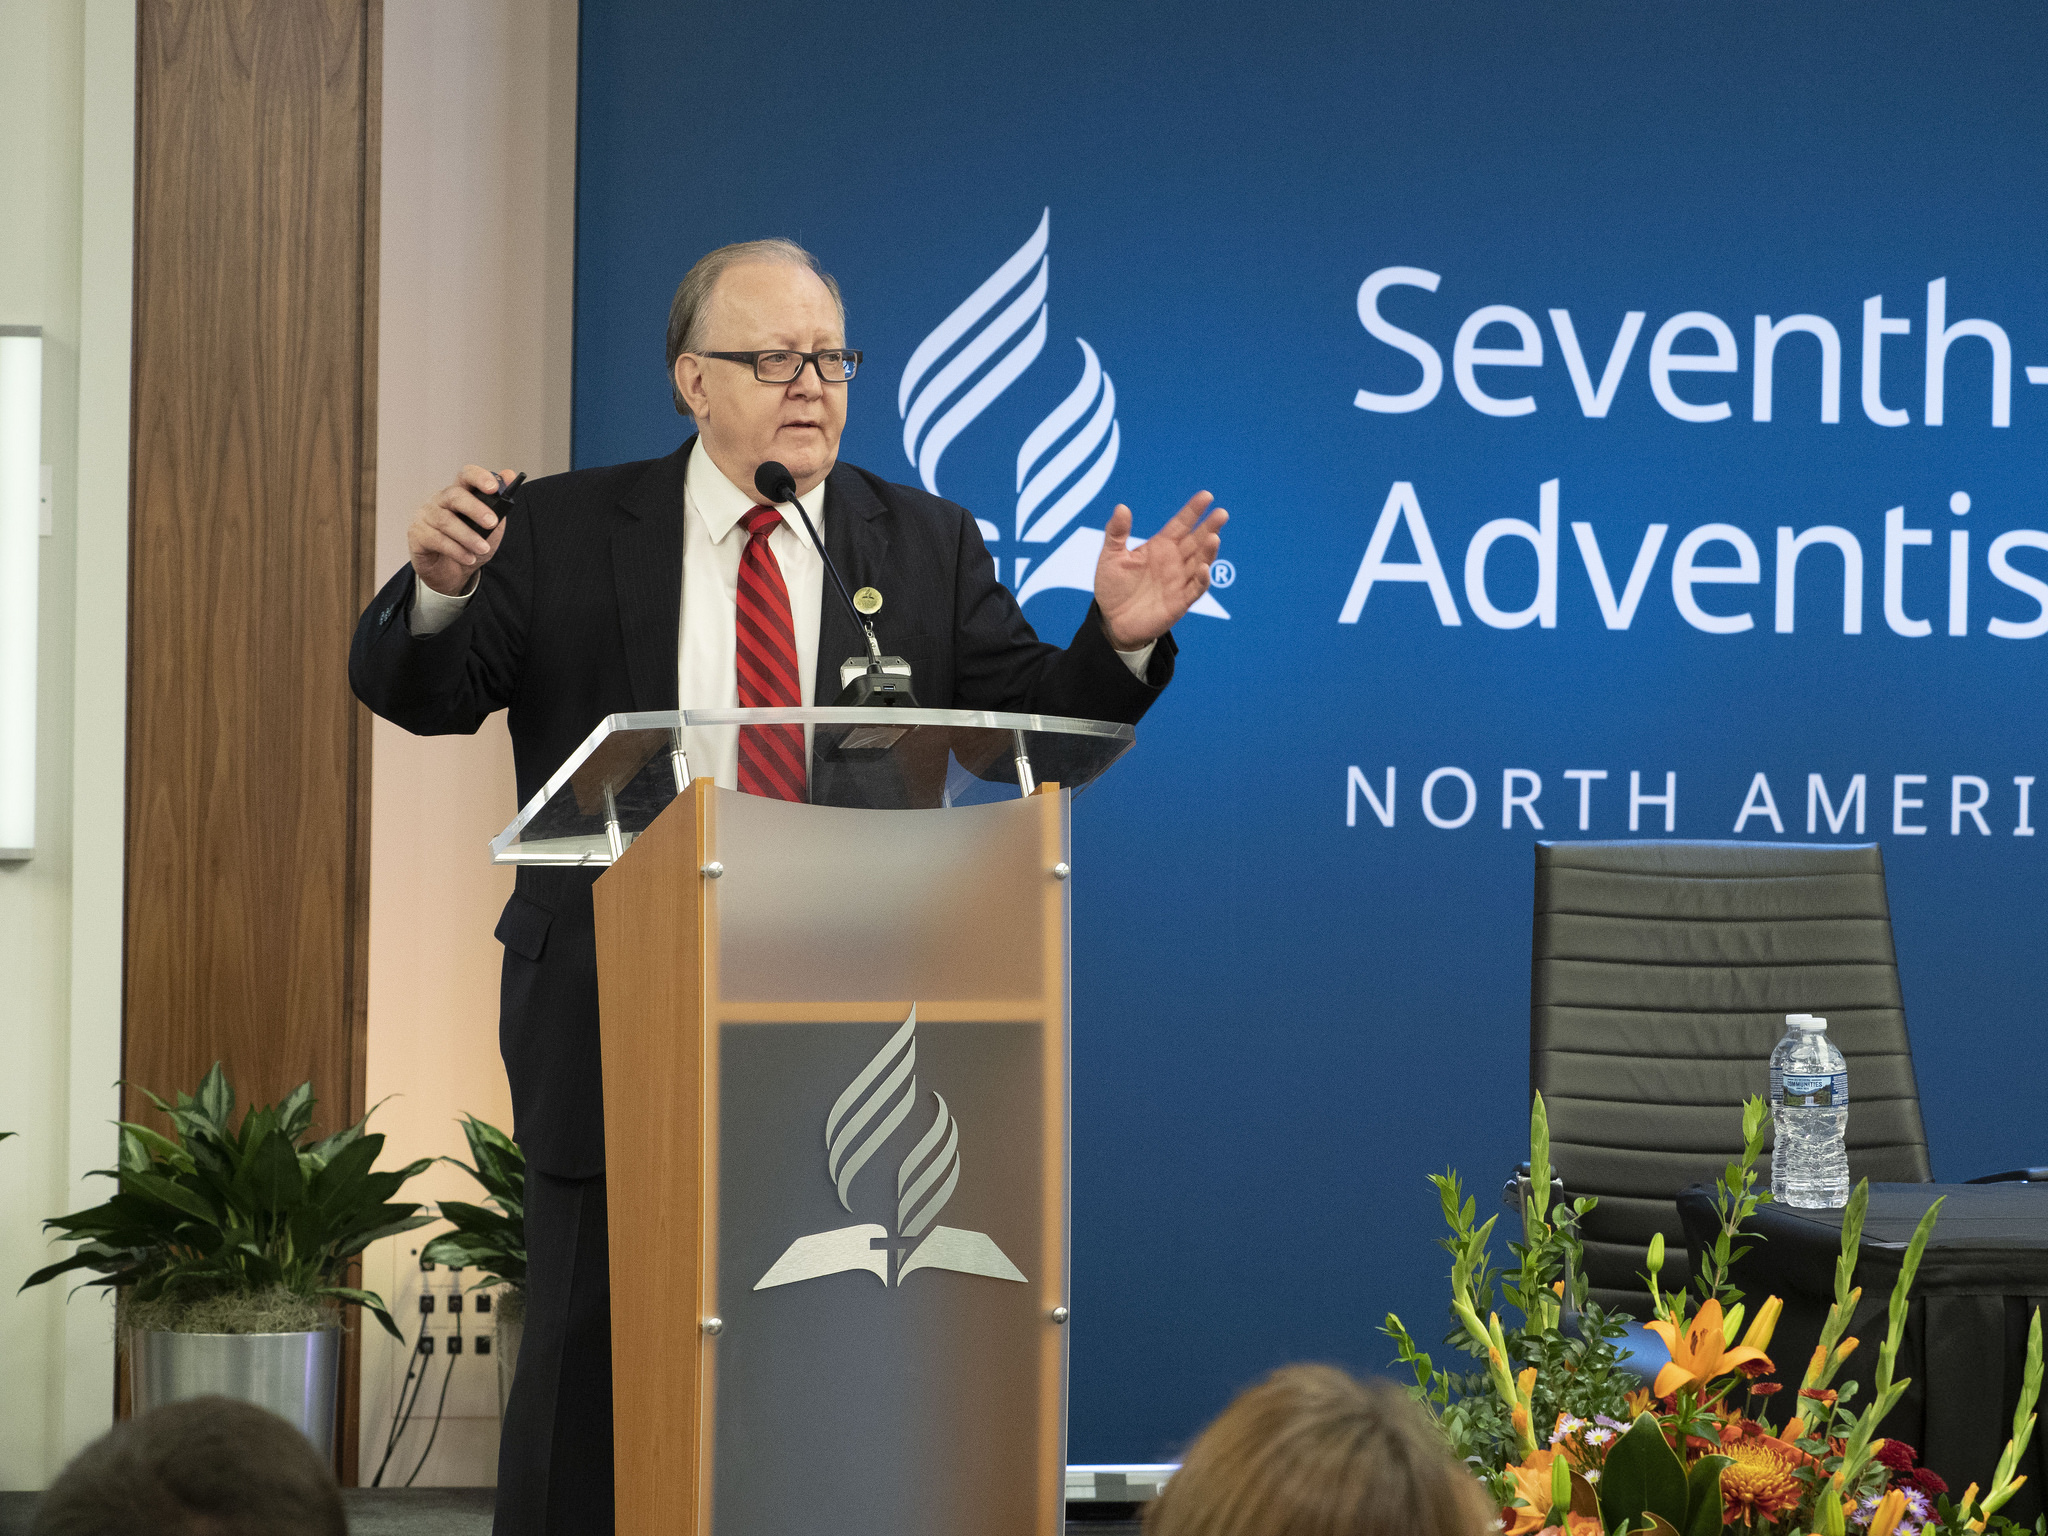 Daniel R. Jackson, president of the Seventh-day Adventist Church in North America (NAD), presents his report during the first business session of the 2018 NAD Year-End Meeting. Photo by Mylon Medley